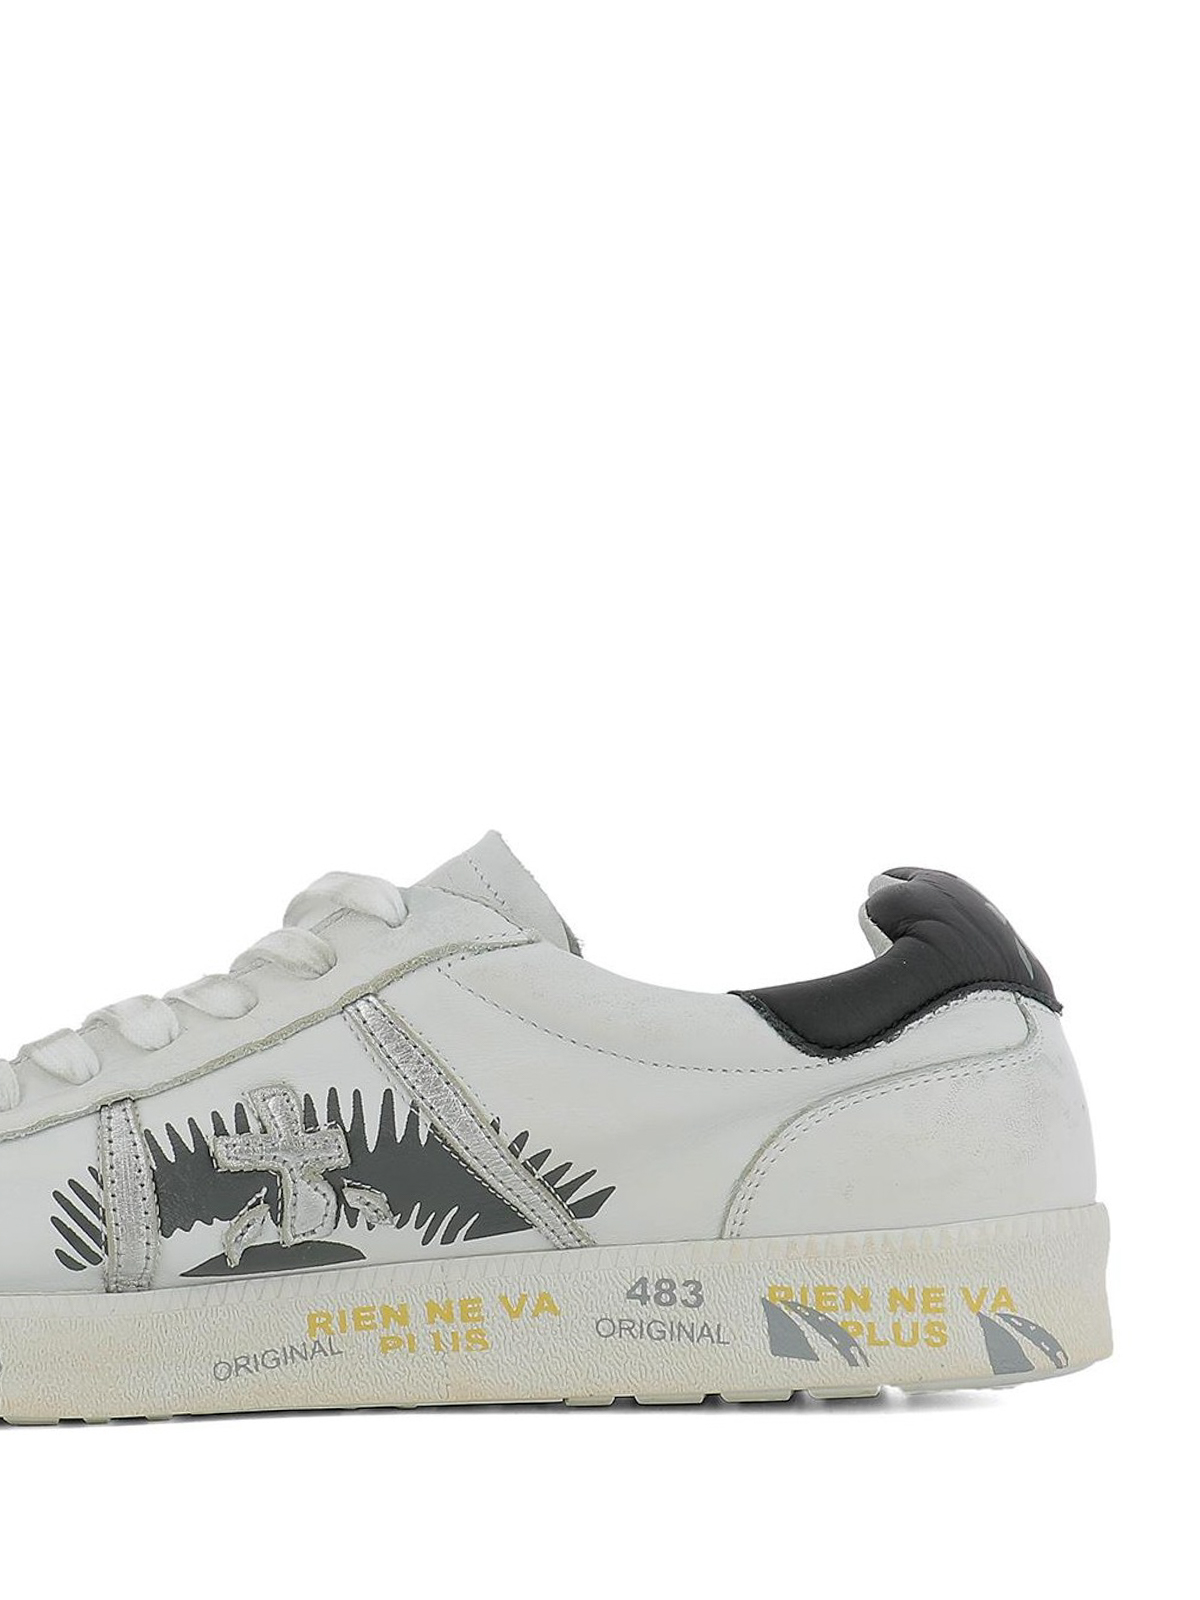 3fab0eb5a0 Premiata - Sneaker basse Andy in pelle bianca - sneakers - ANDY 3094